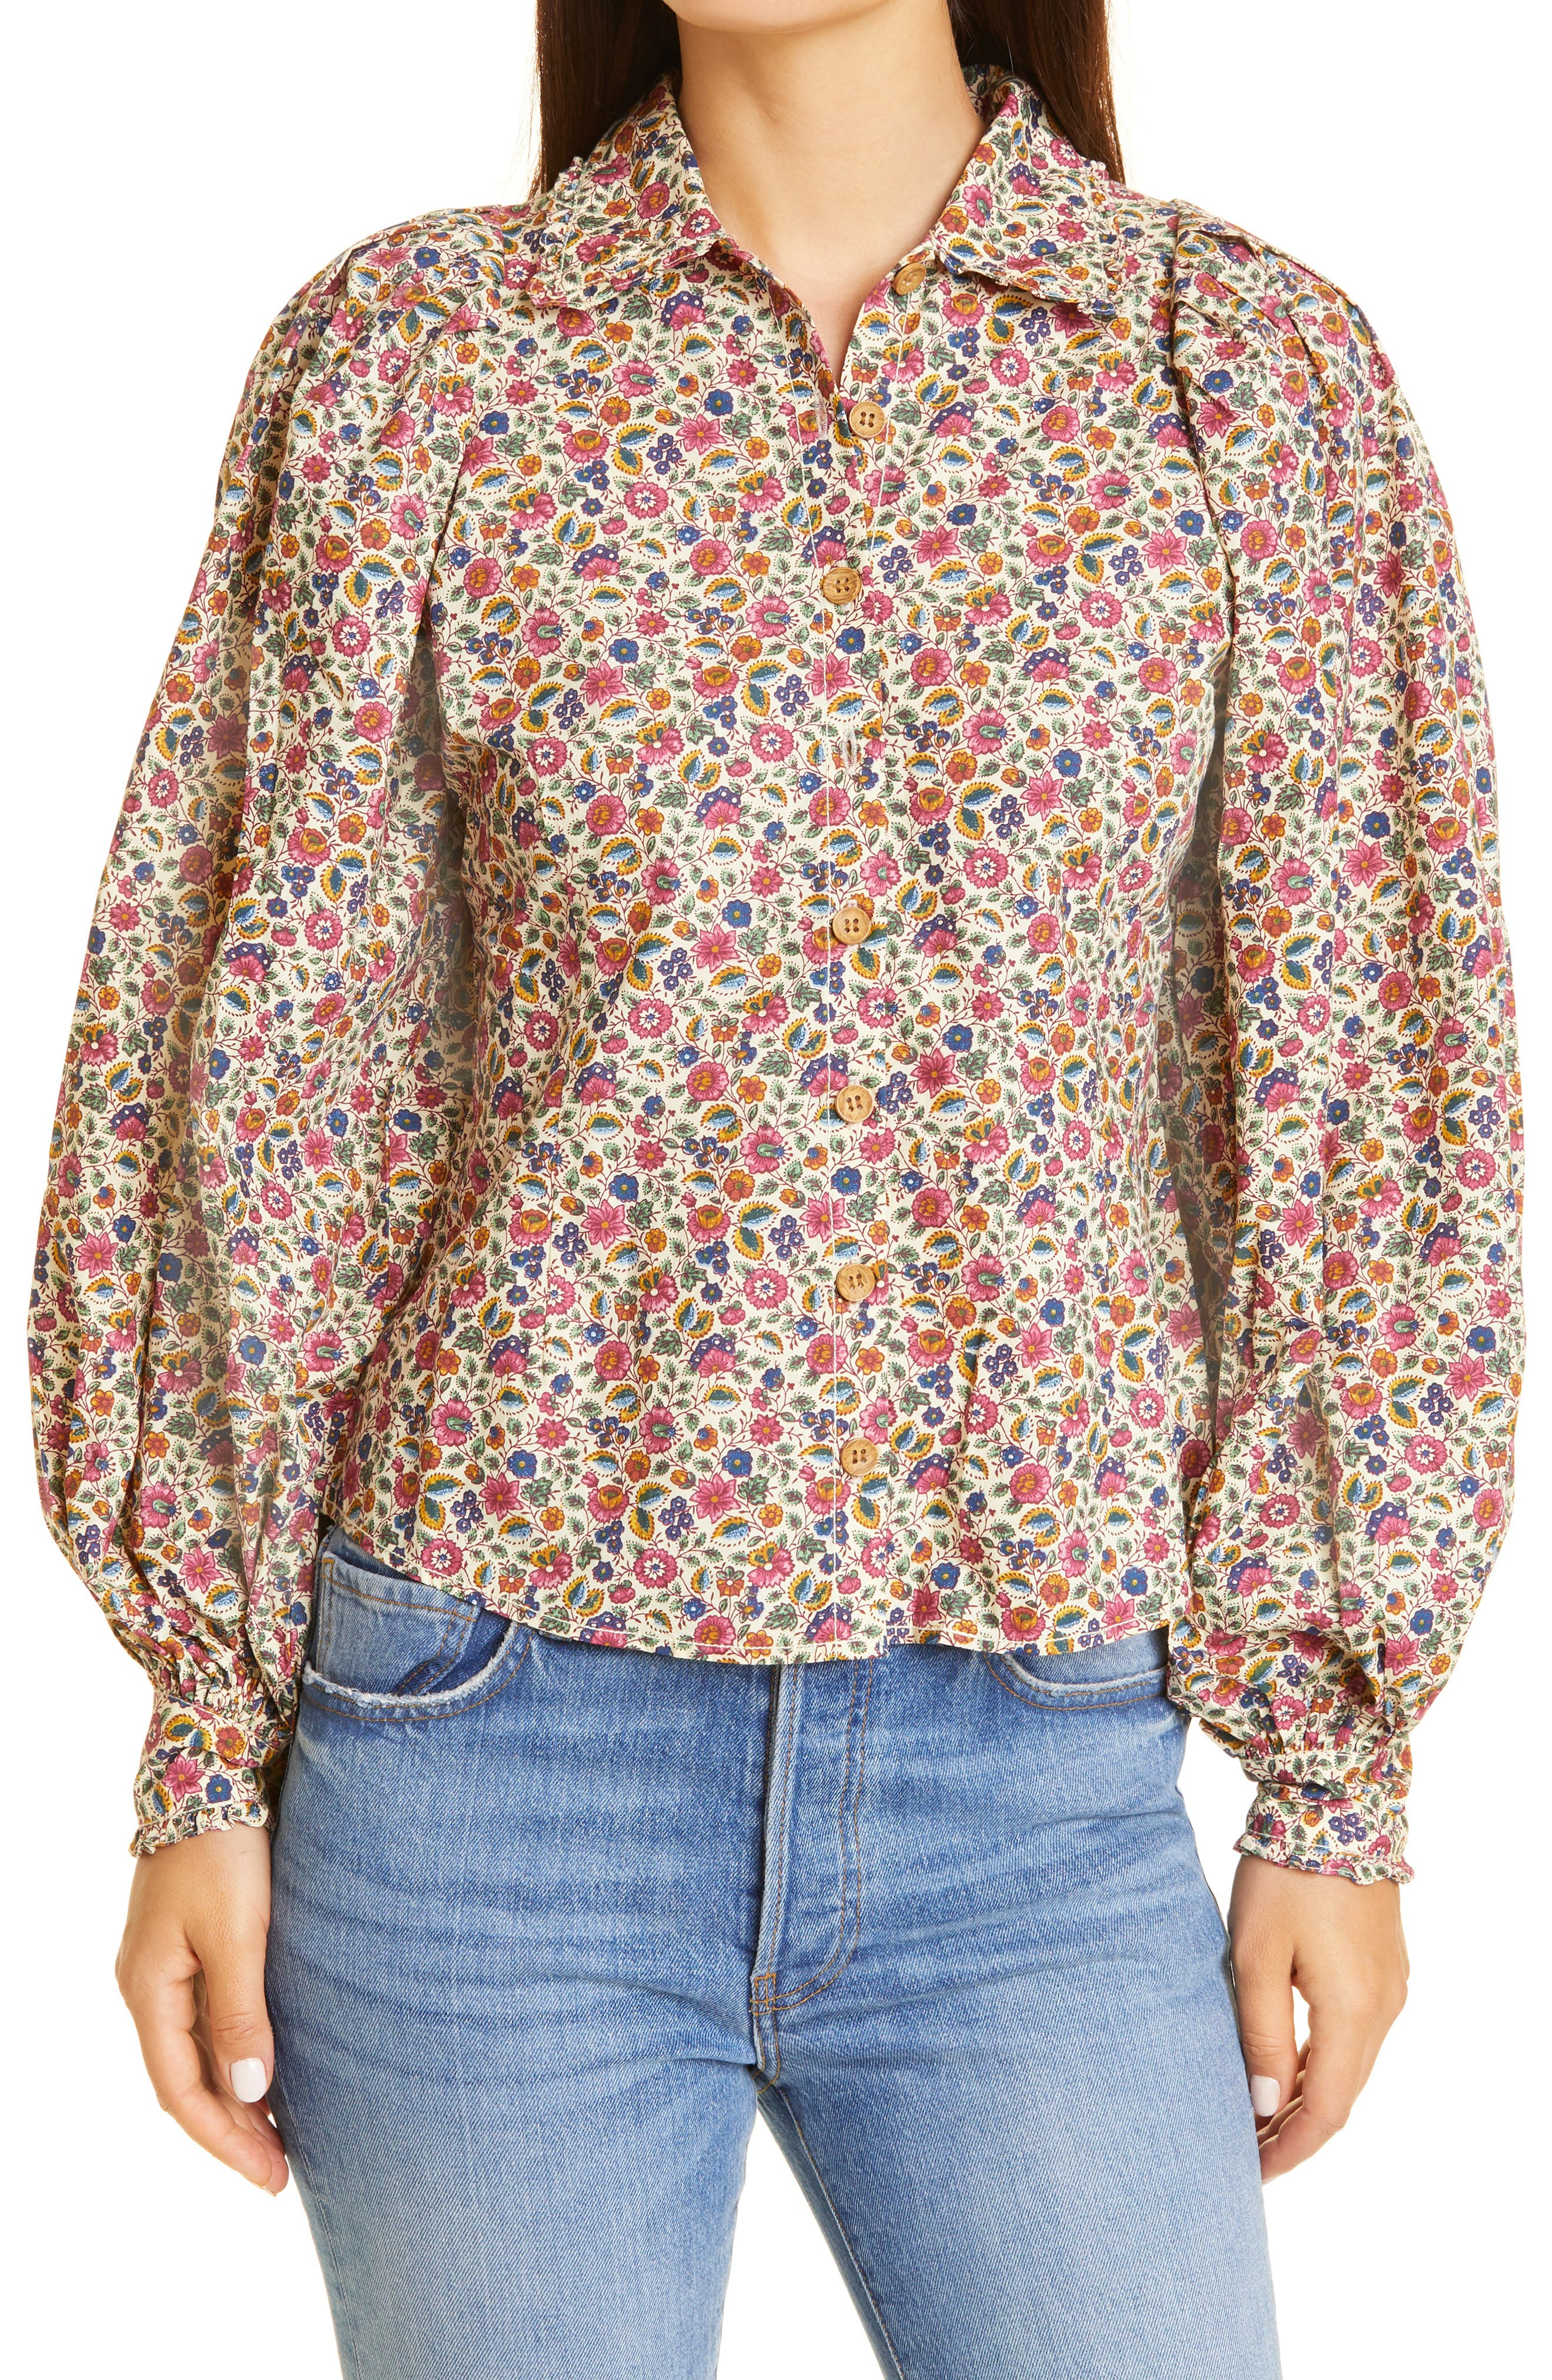 '50S Floral Ditsy Cotton Shirt